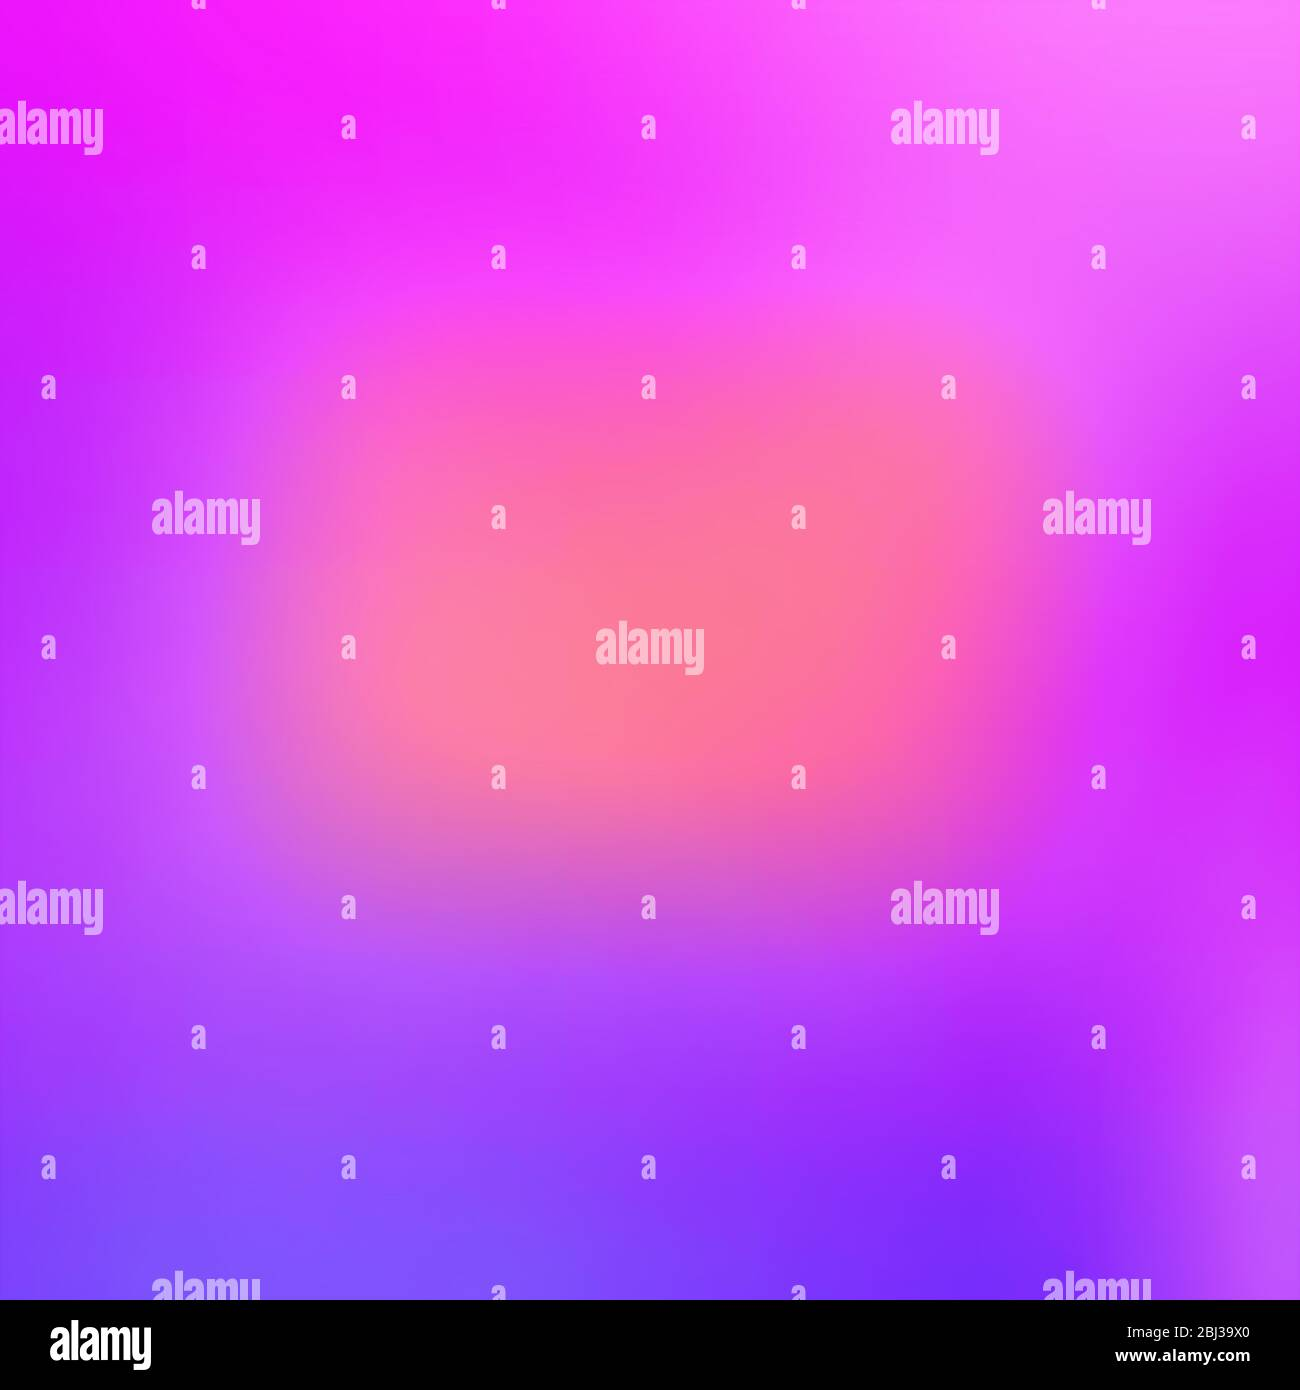 Vibrant Purple Blue Orange And Pink Colors Make This Digital Art Textured Effect Abstract Background Pop Stock Photo Alamy